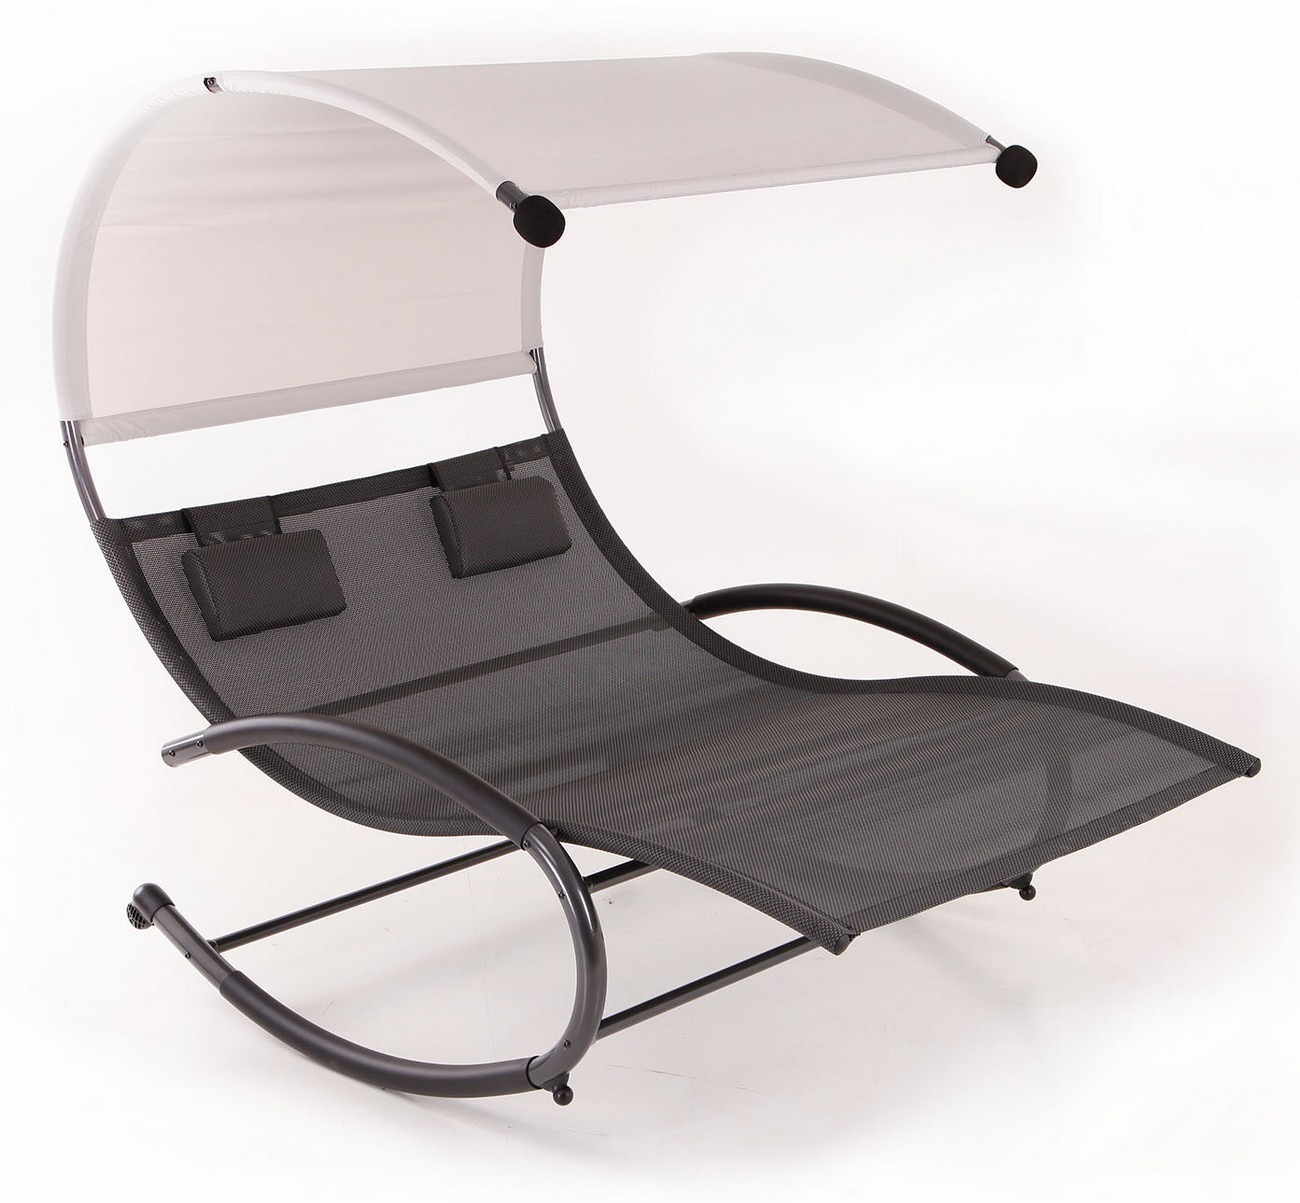 Outdoor Chair With Canopy Double Chaise Rocker Patio Furniture Seat Chair Canopy